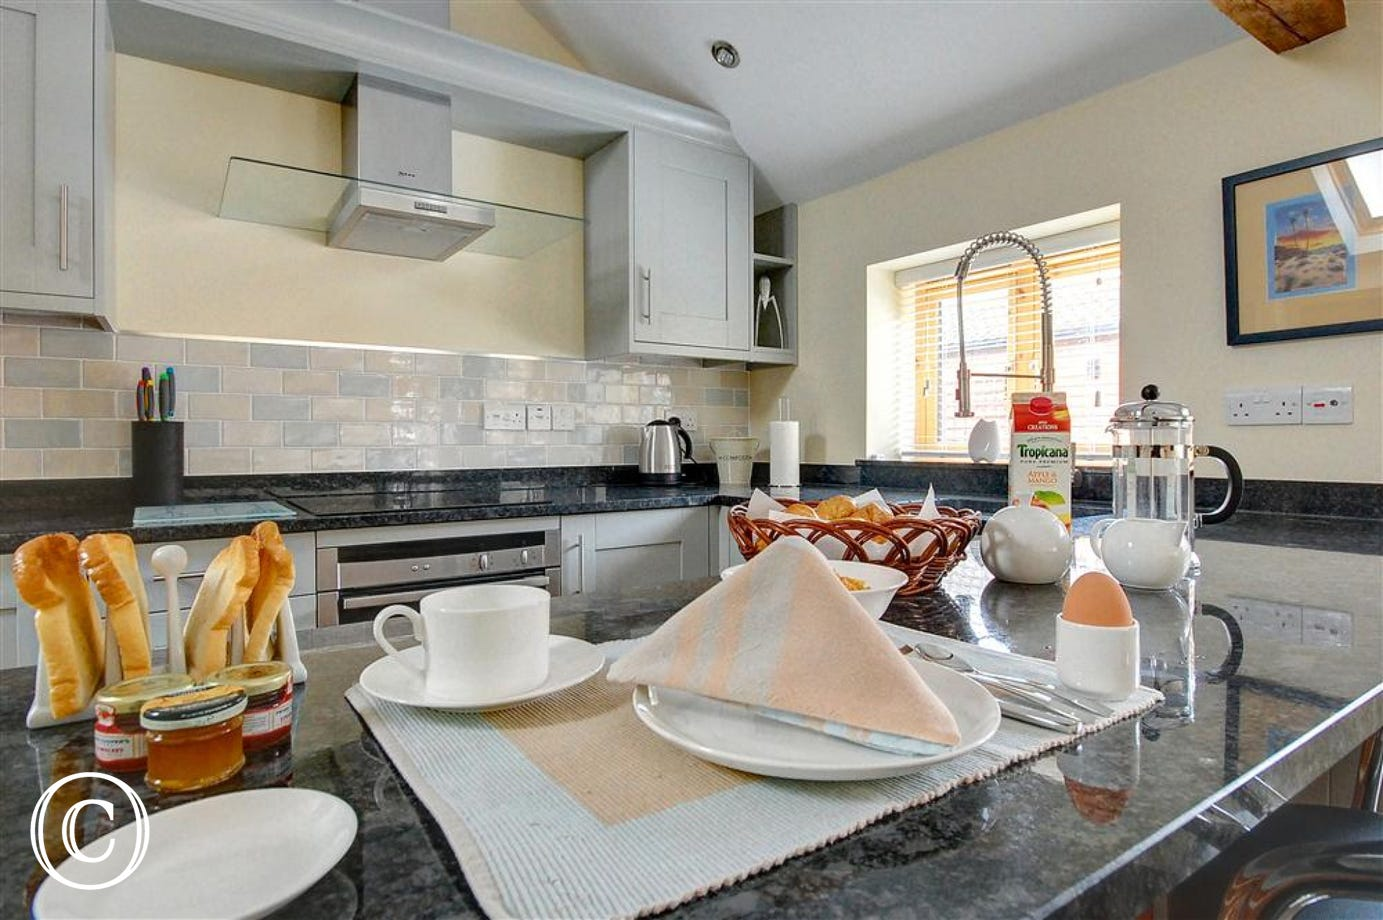 Enjoy a hearty breakfast together on this granite style work top in the kitchen area.